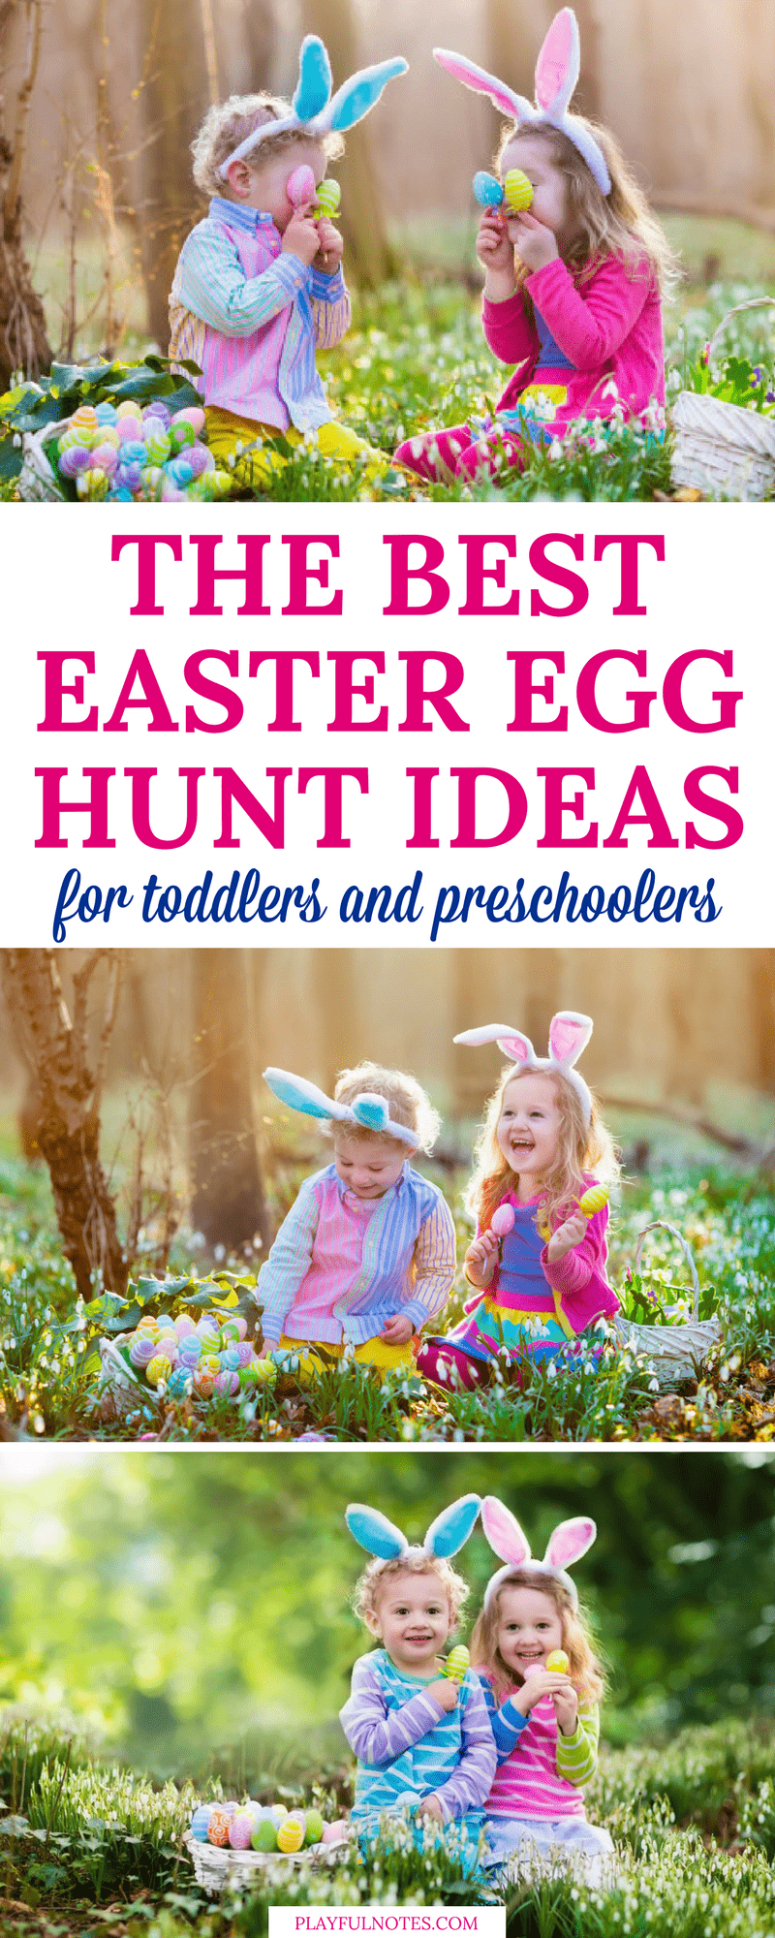 Scavenger hunts are always fun for kids! Here is a list of awesome Easter hunt ideas for kids to help you plan a great scavenger hunt that your child will love! | Easter hunt ideas | Easter hunt activities | How to make an Easter hunt #EasterForKids